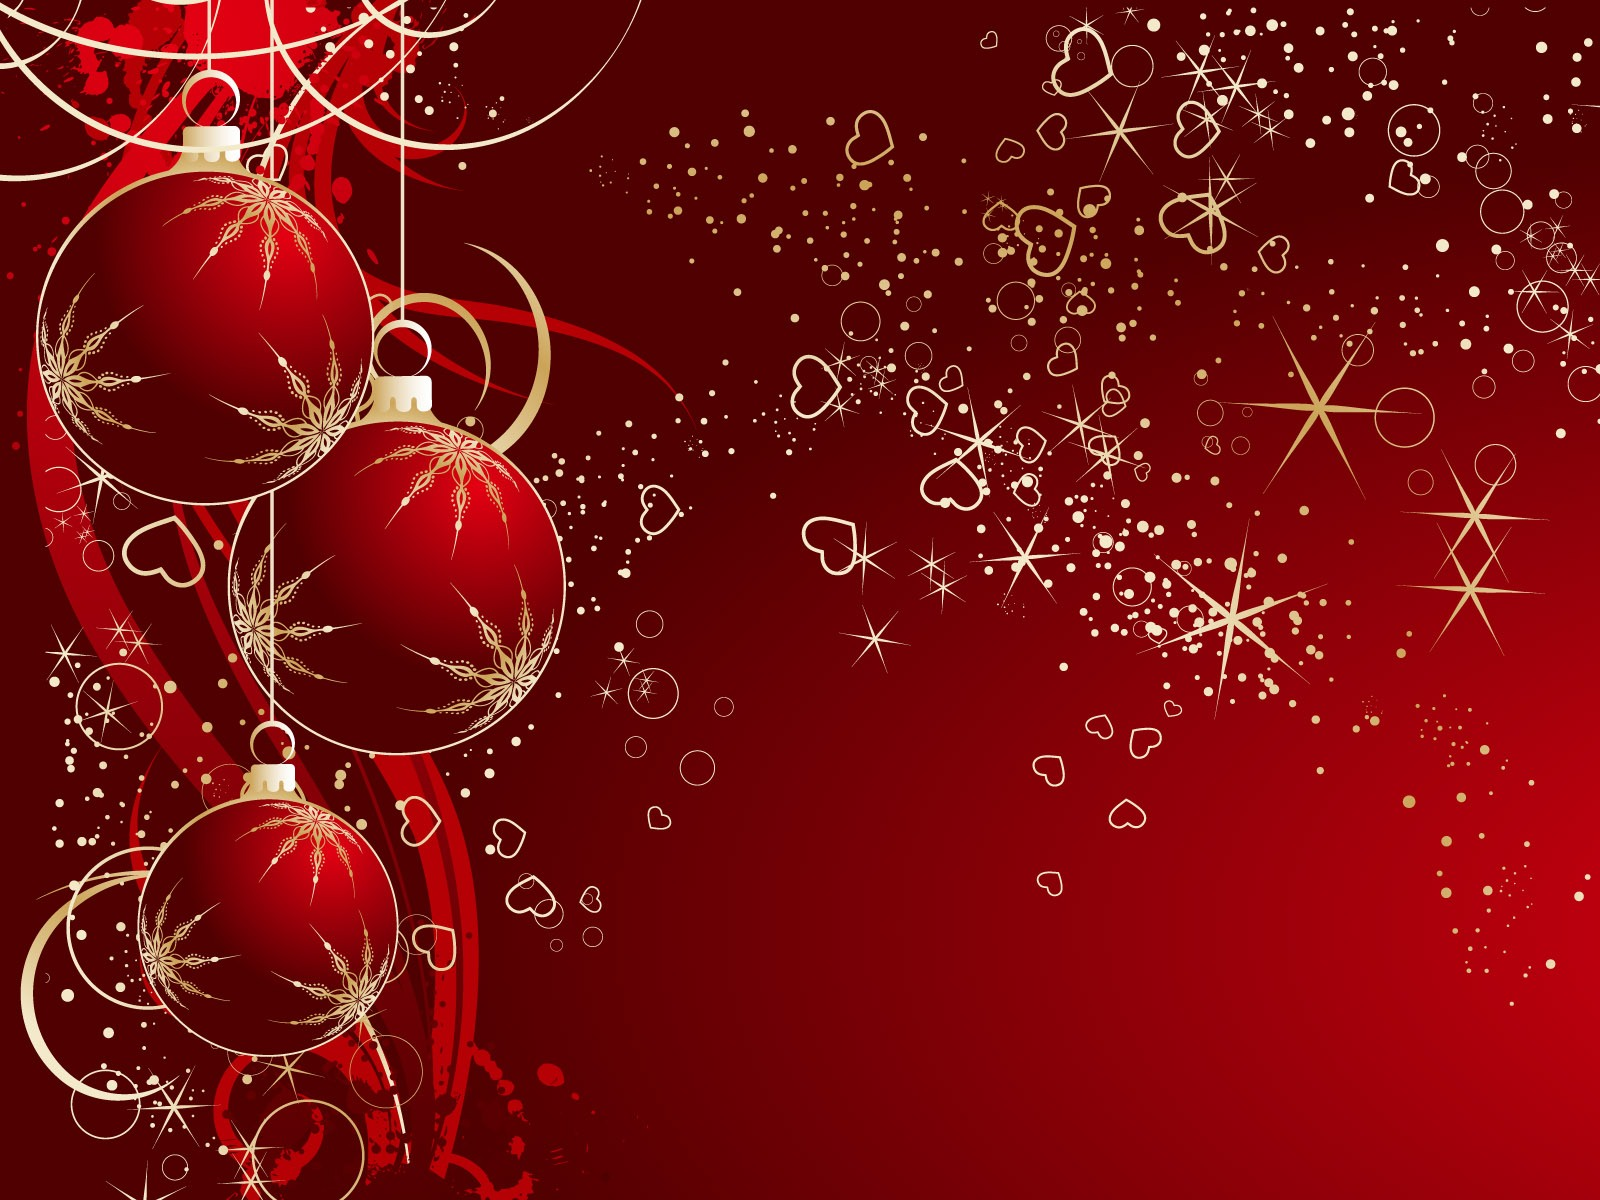 Christmas wallpaper hd delightful ebony gorgeous